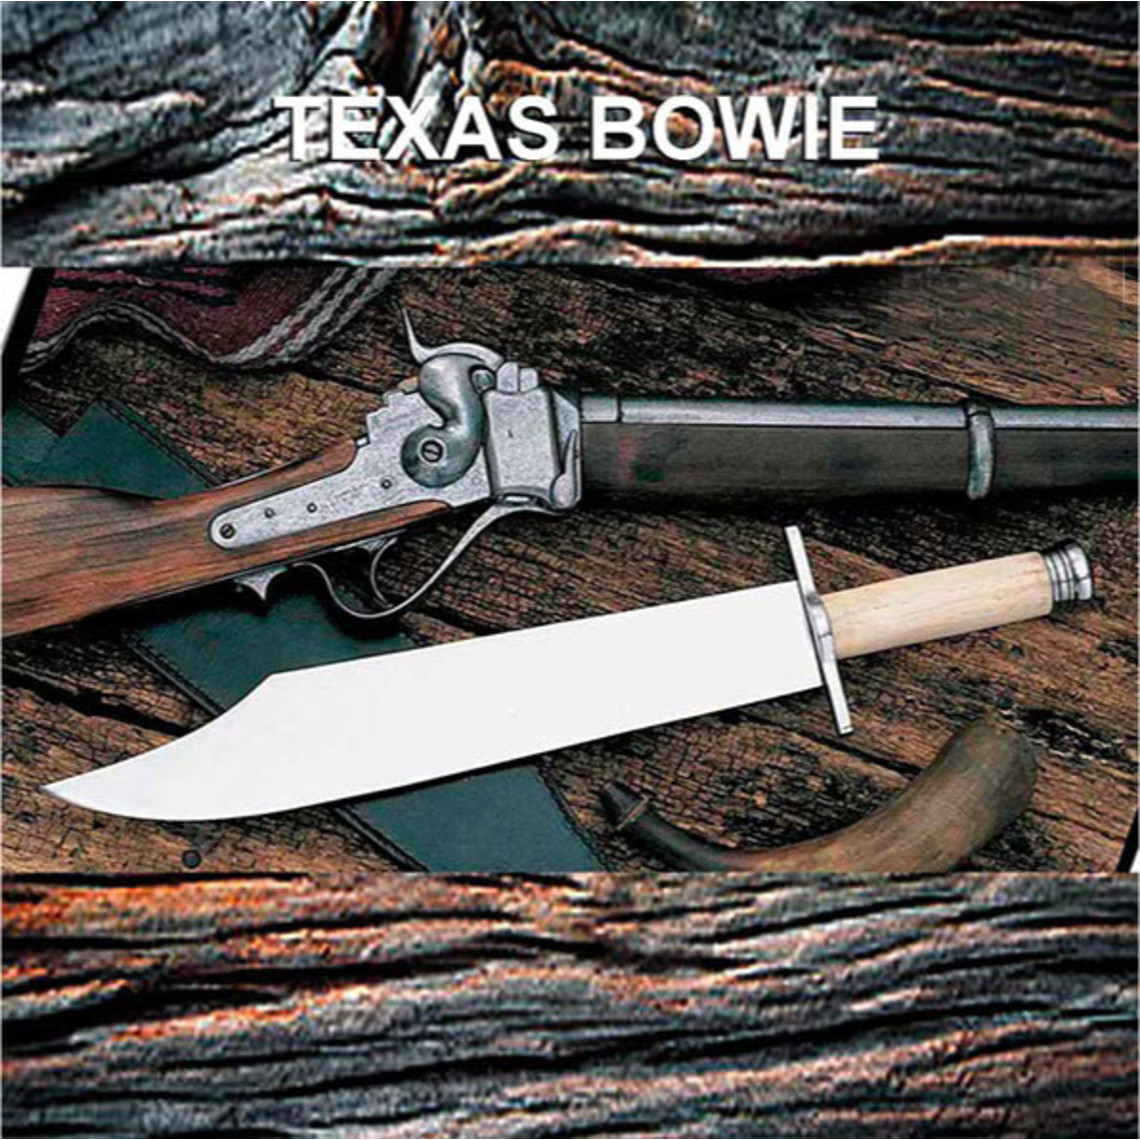 Windlass Steelcrafts Bowie mes Texas